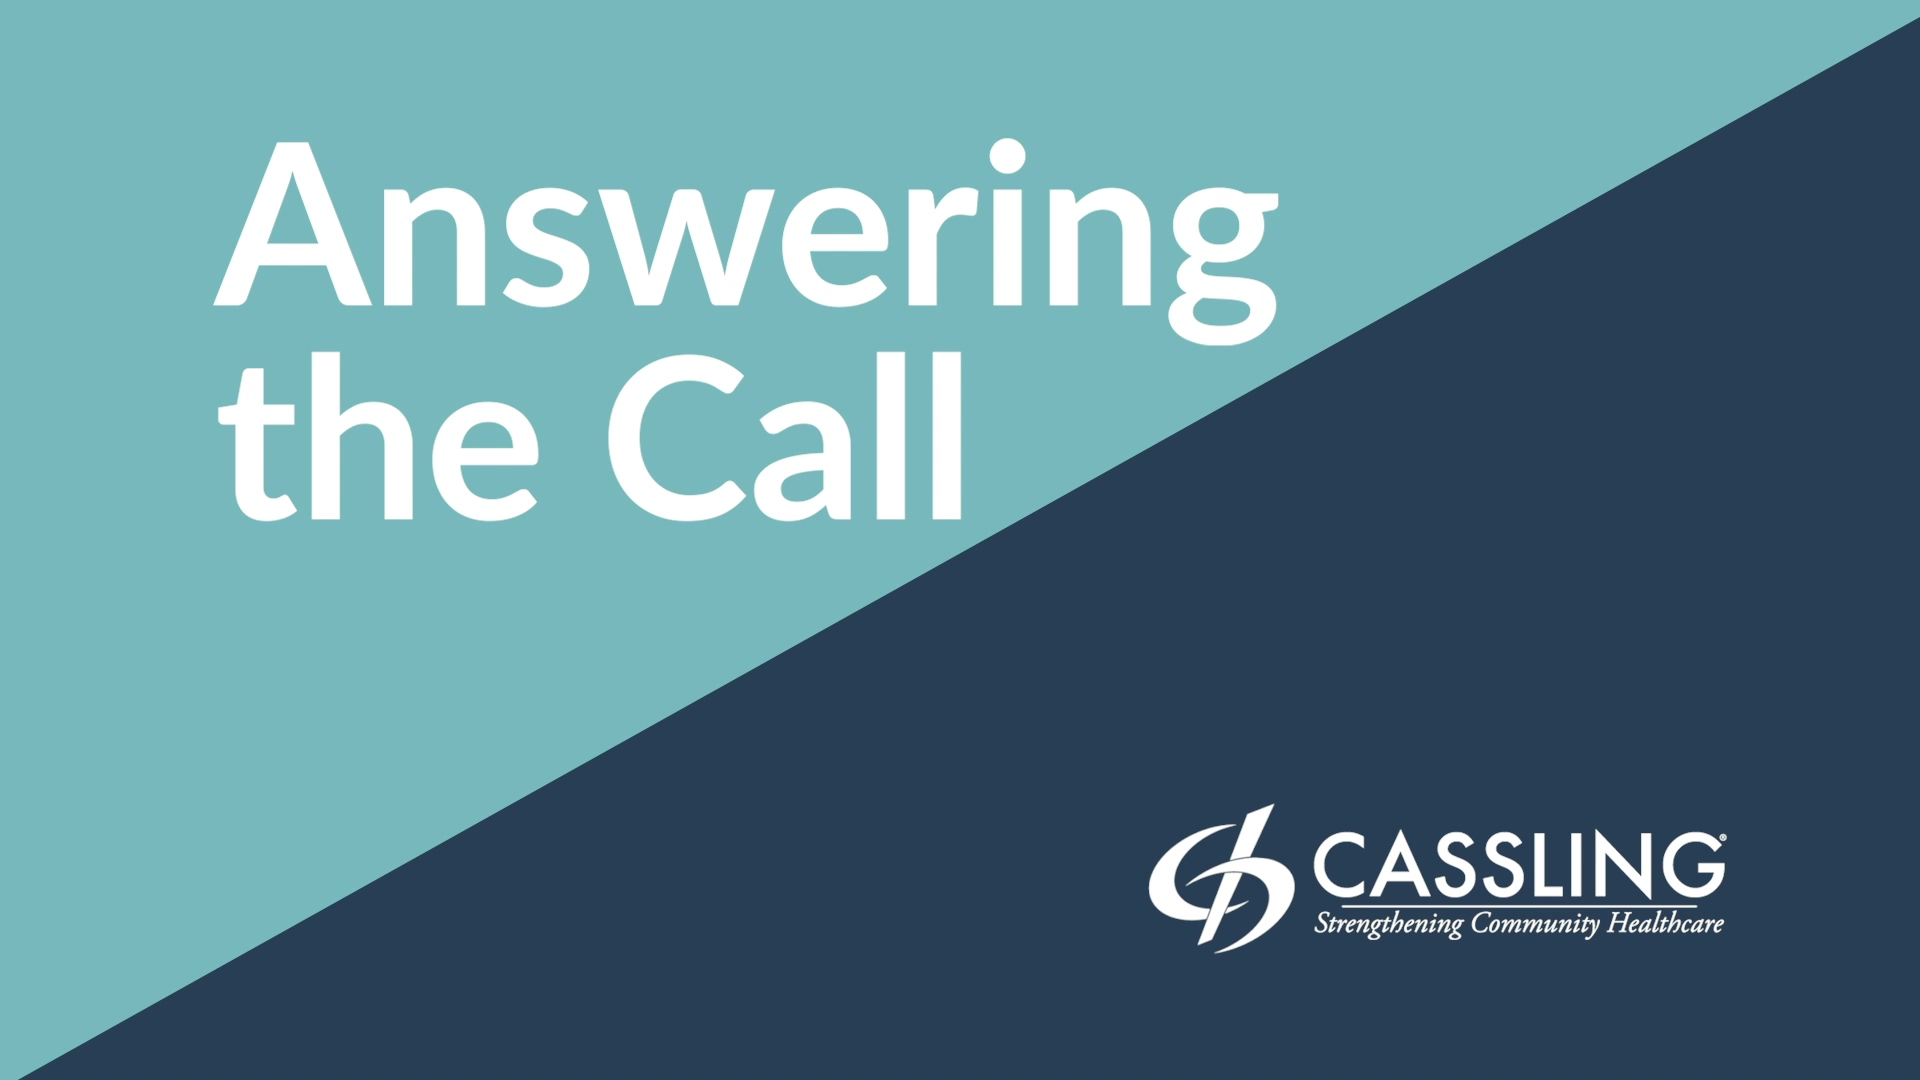 Answering the Call Cassling